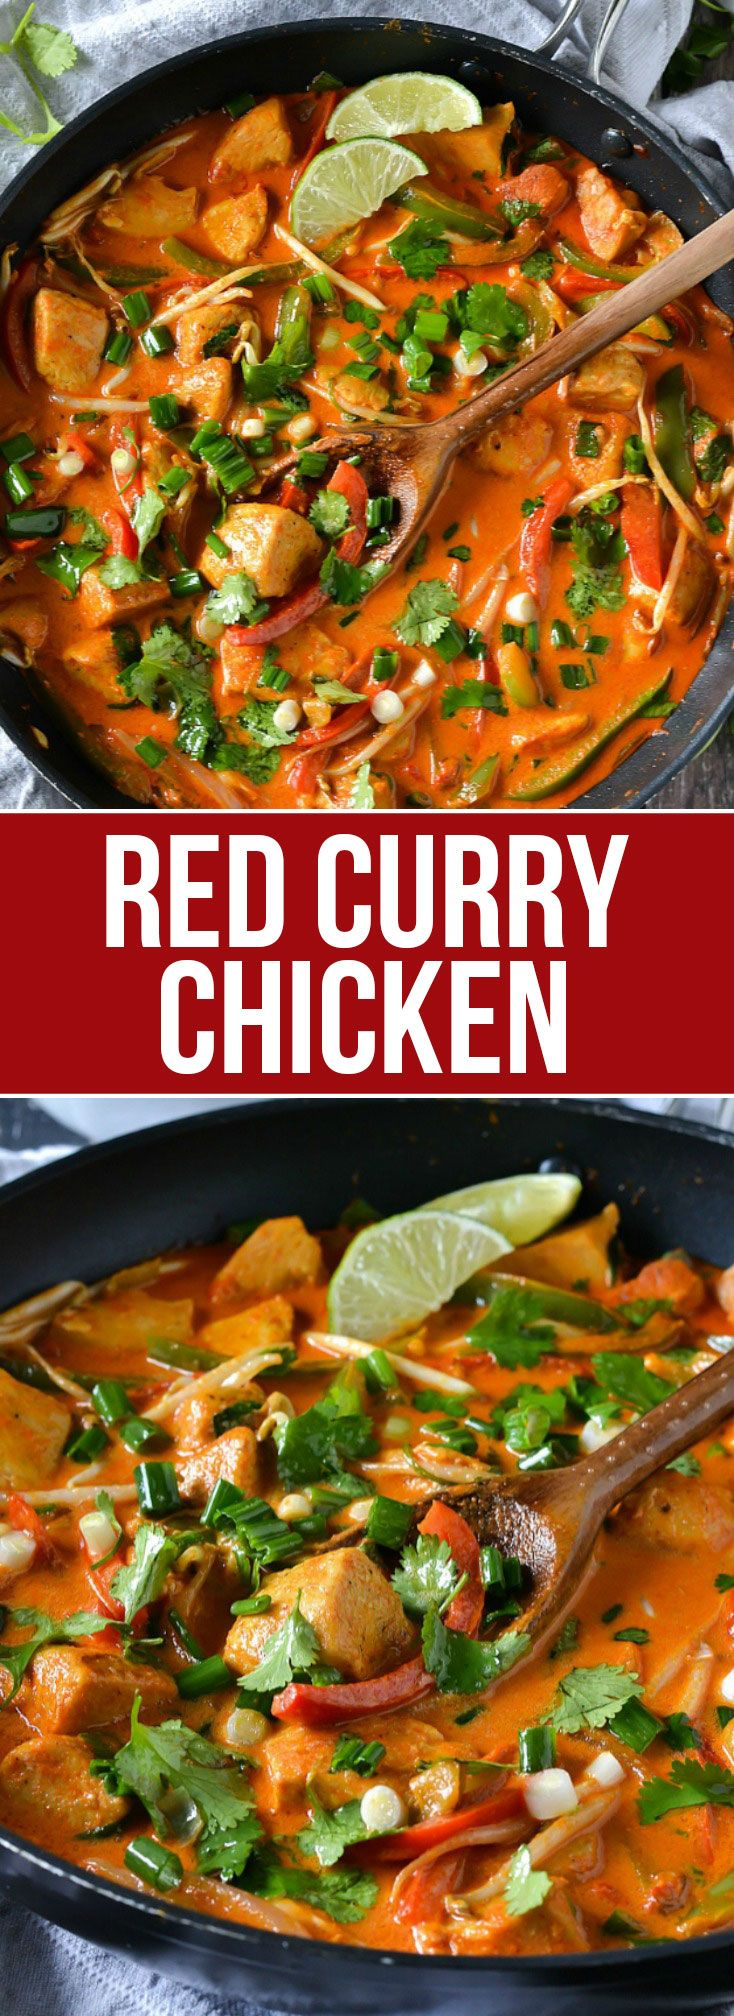 30 Minute Meal Red Curry Chicken Recipe Indian food